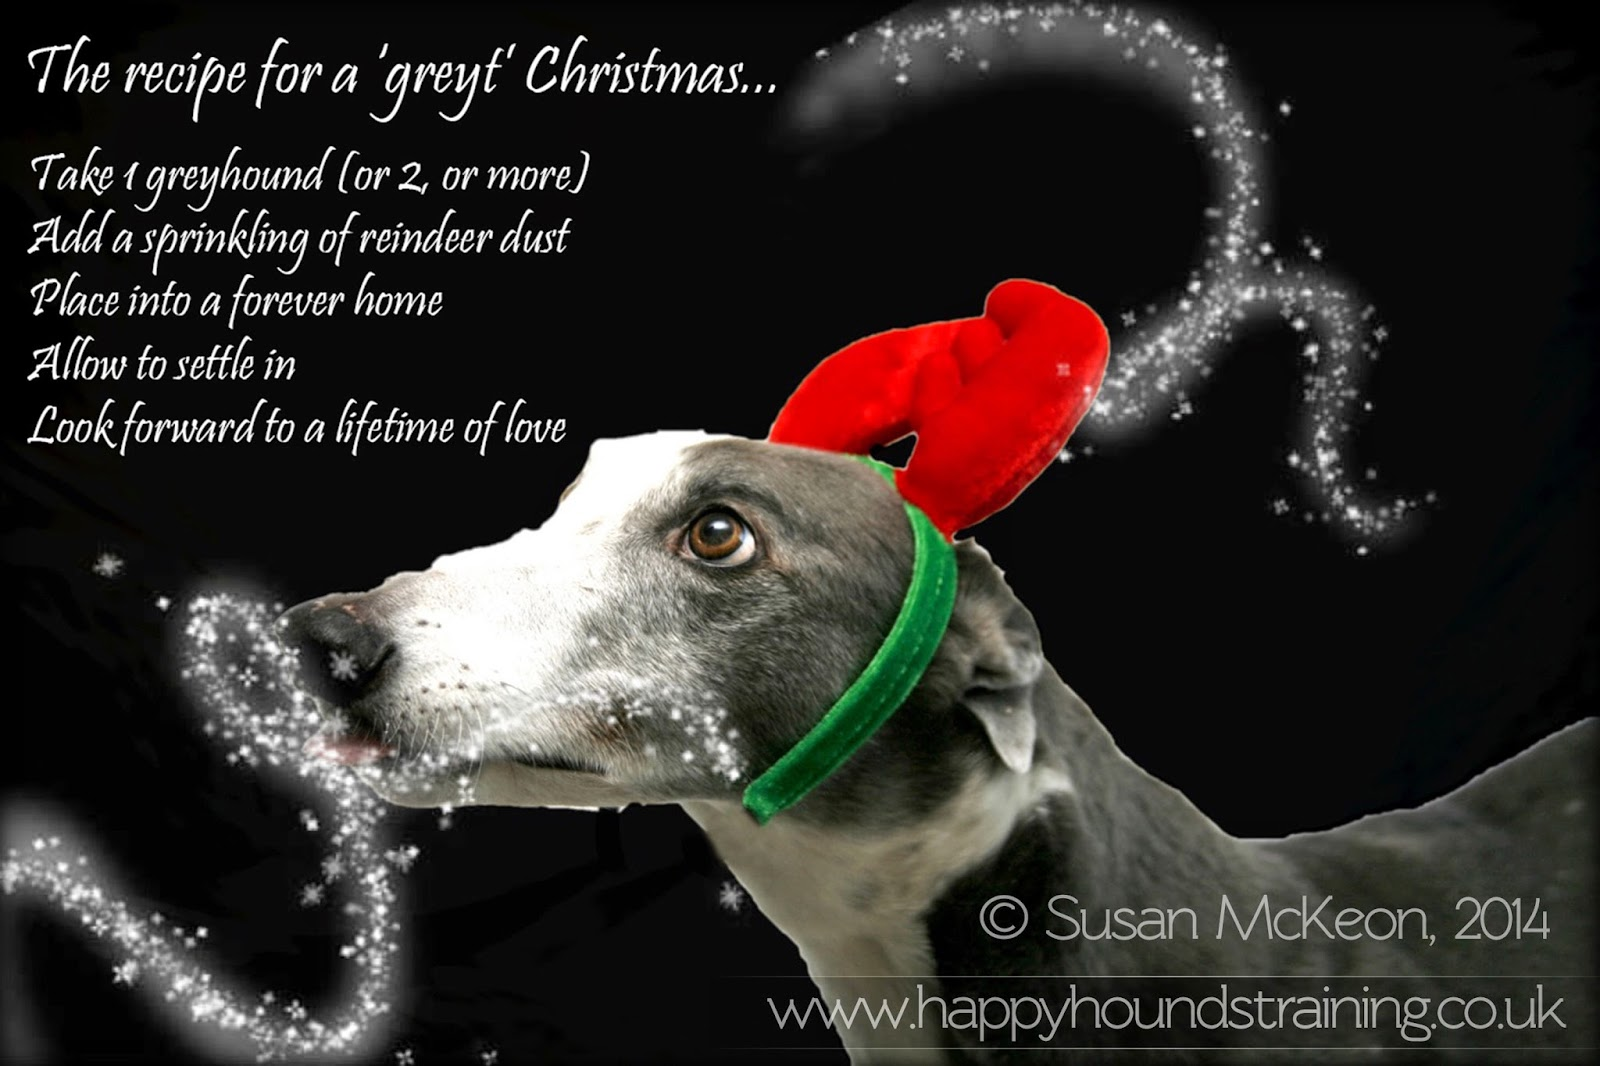 Image: Greyhound wearing reindeer antlers